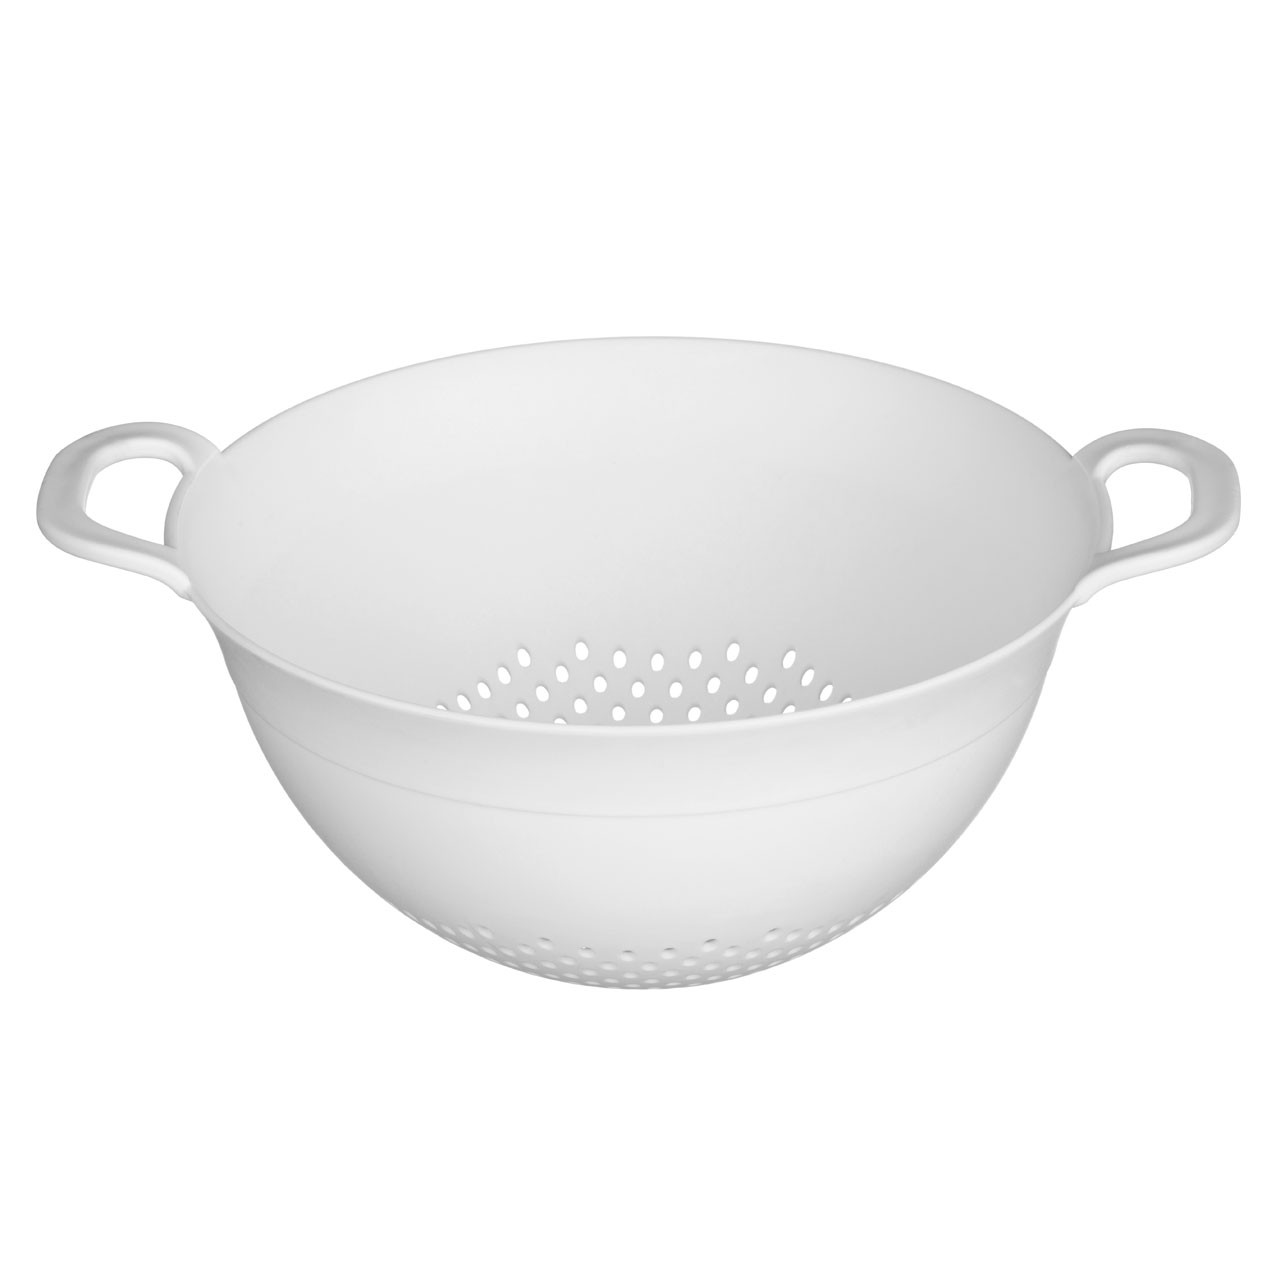 Colander An ideal utensil for all kitchens